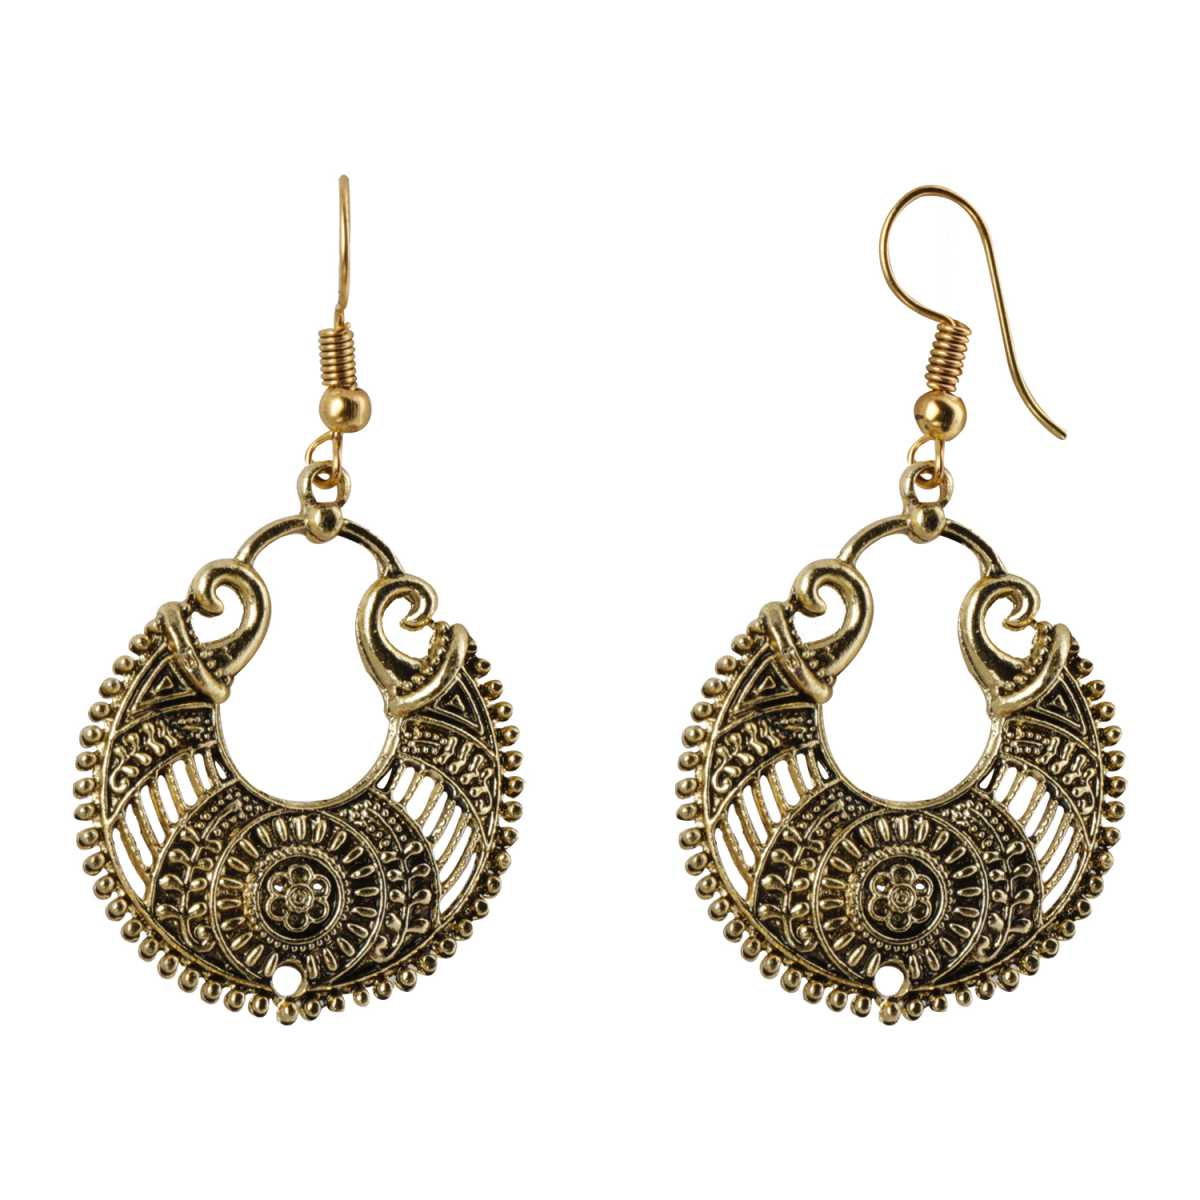 Silver Shine Stylish Arabic Design Chandbali Golden Earrings for Women